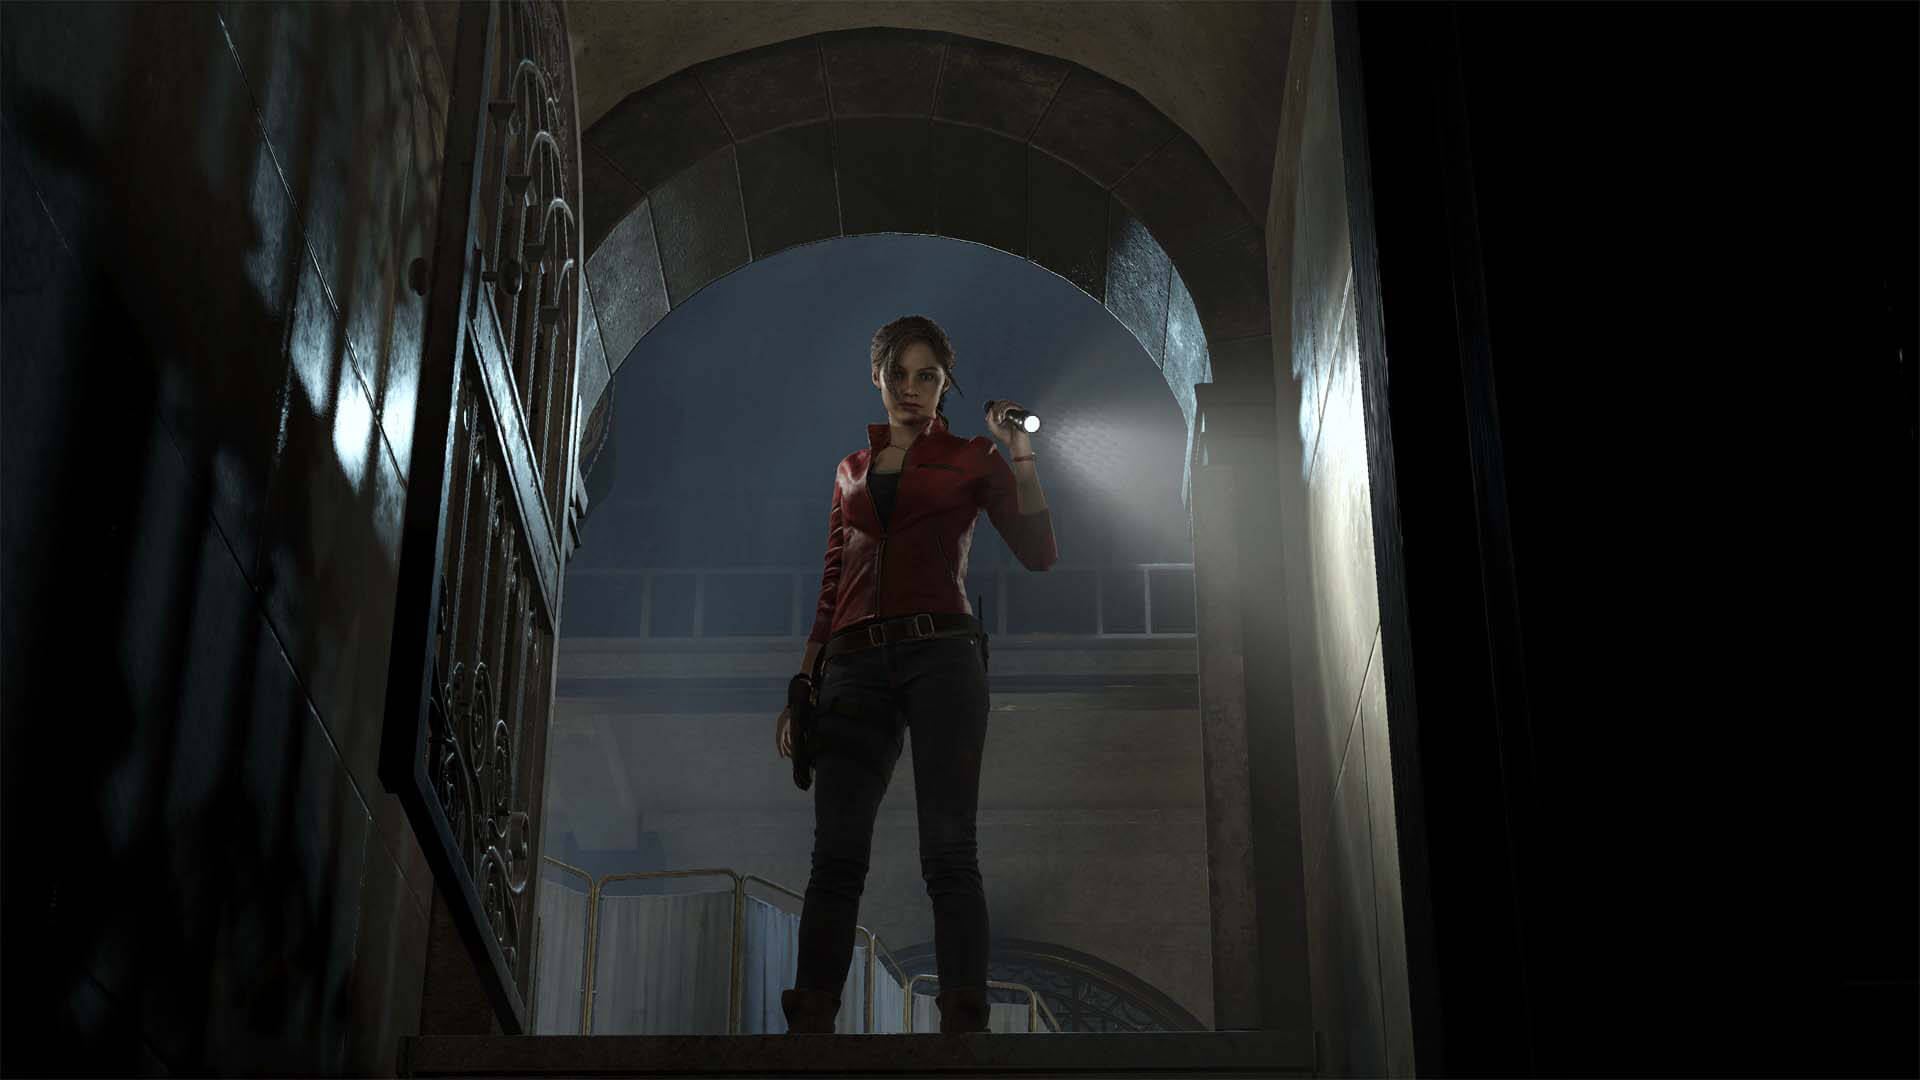 I Wish Resident Evil 2 Let Me Be A More Compassionate Hero